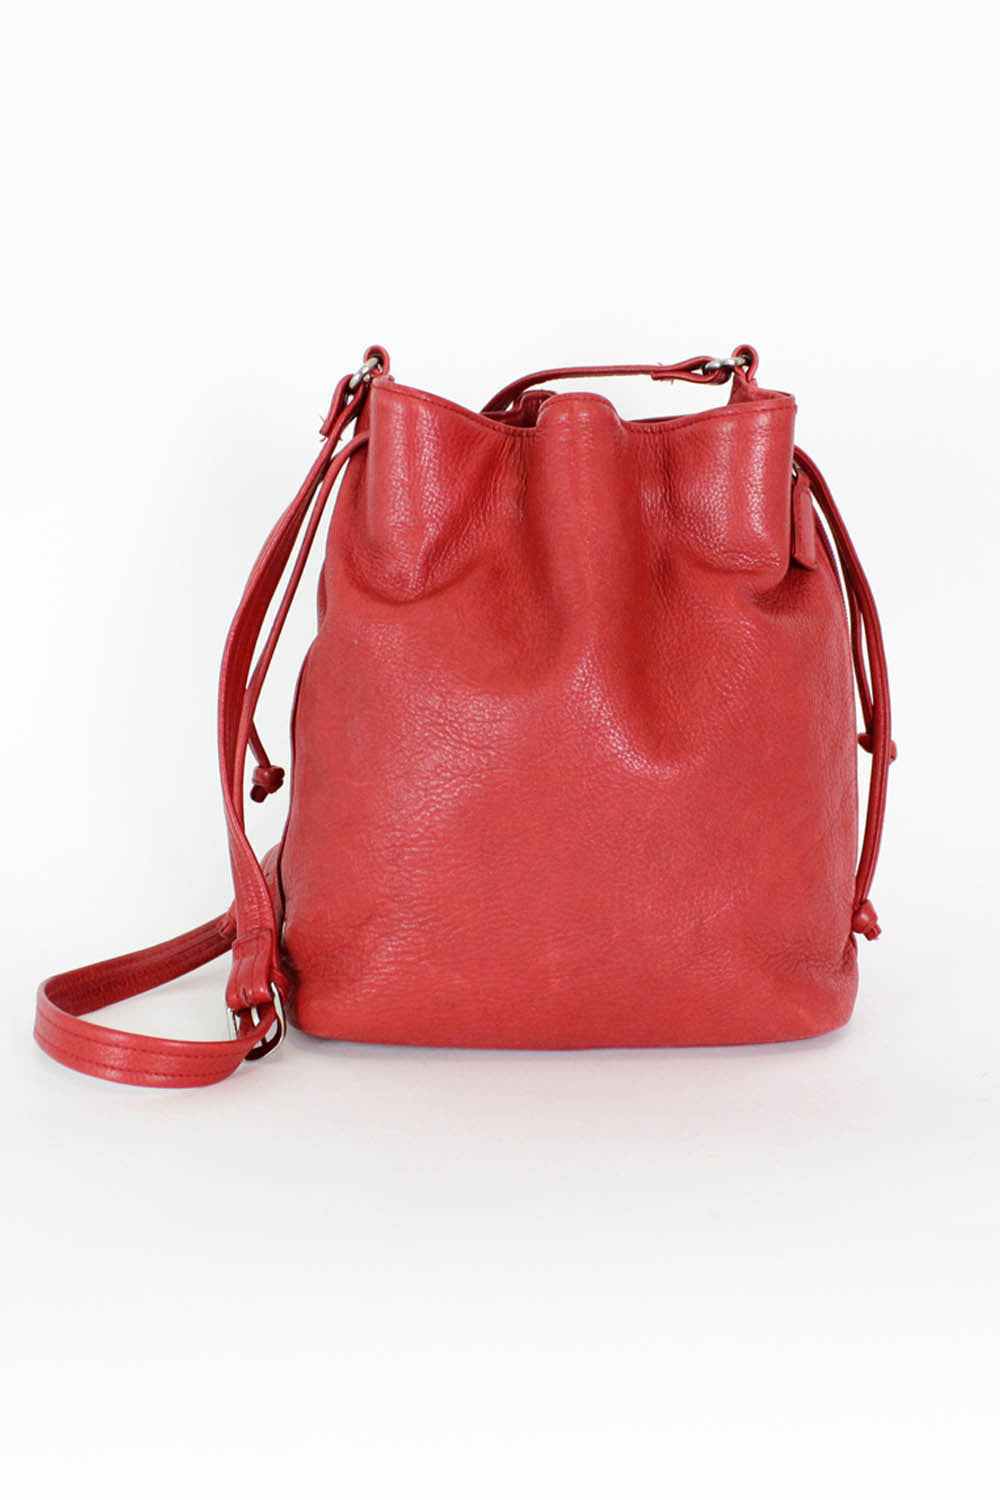 Ruby Red Leather Bucket Bag